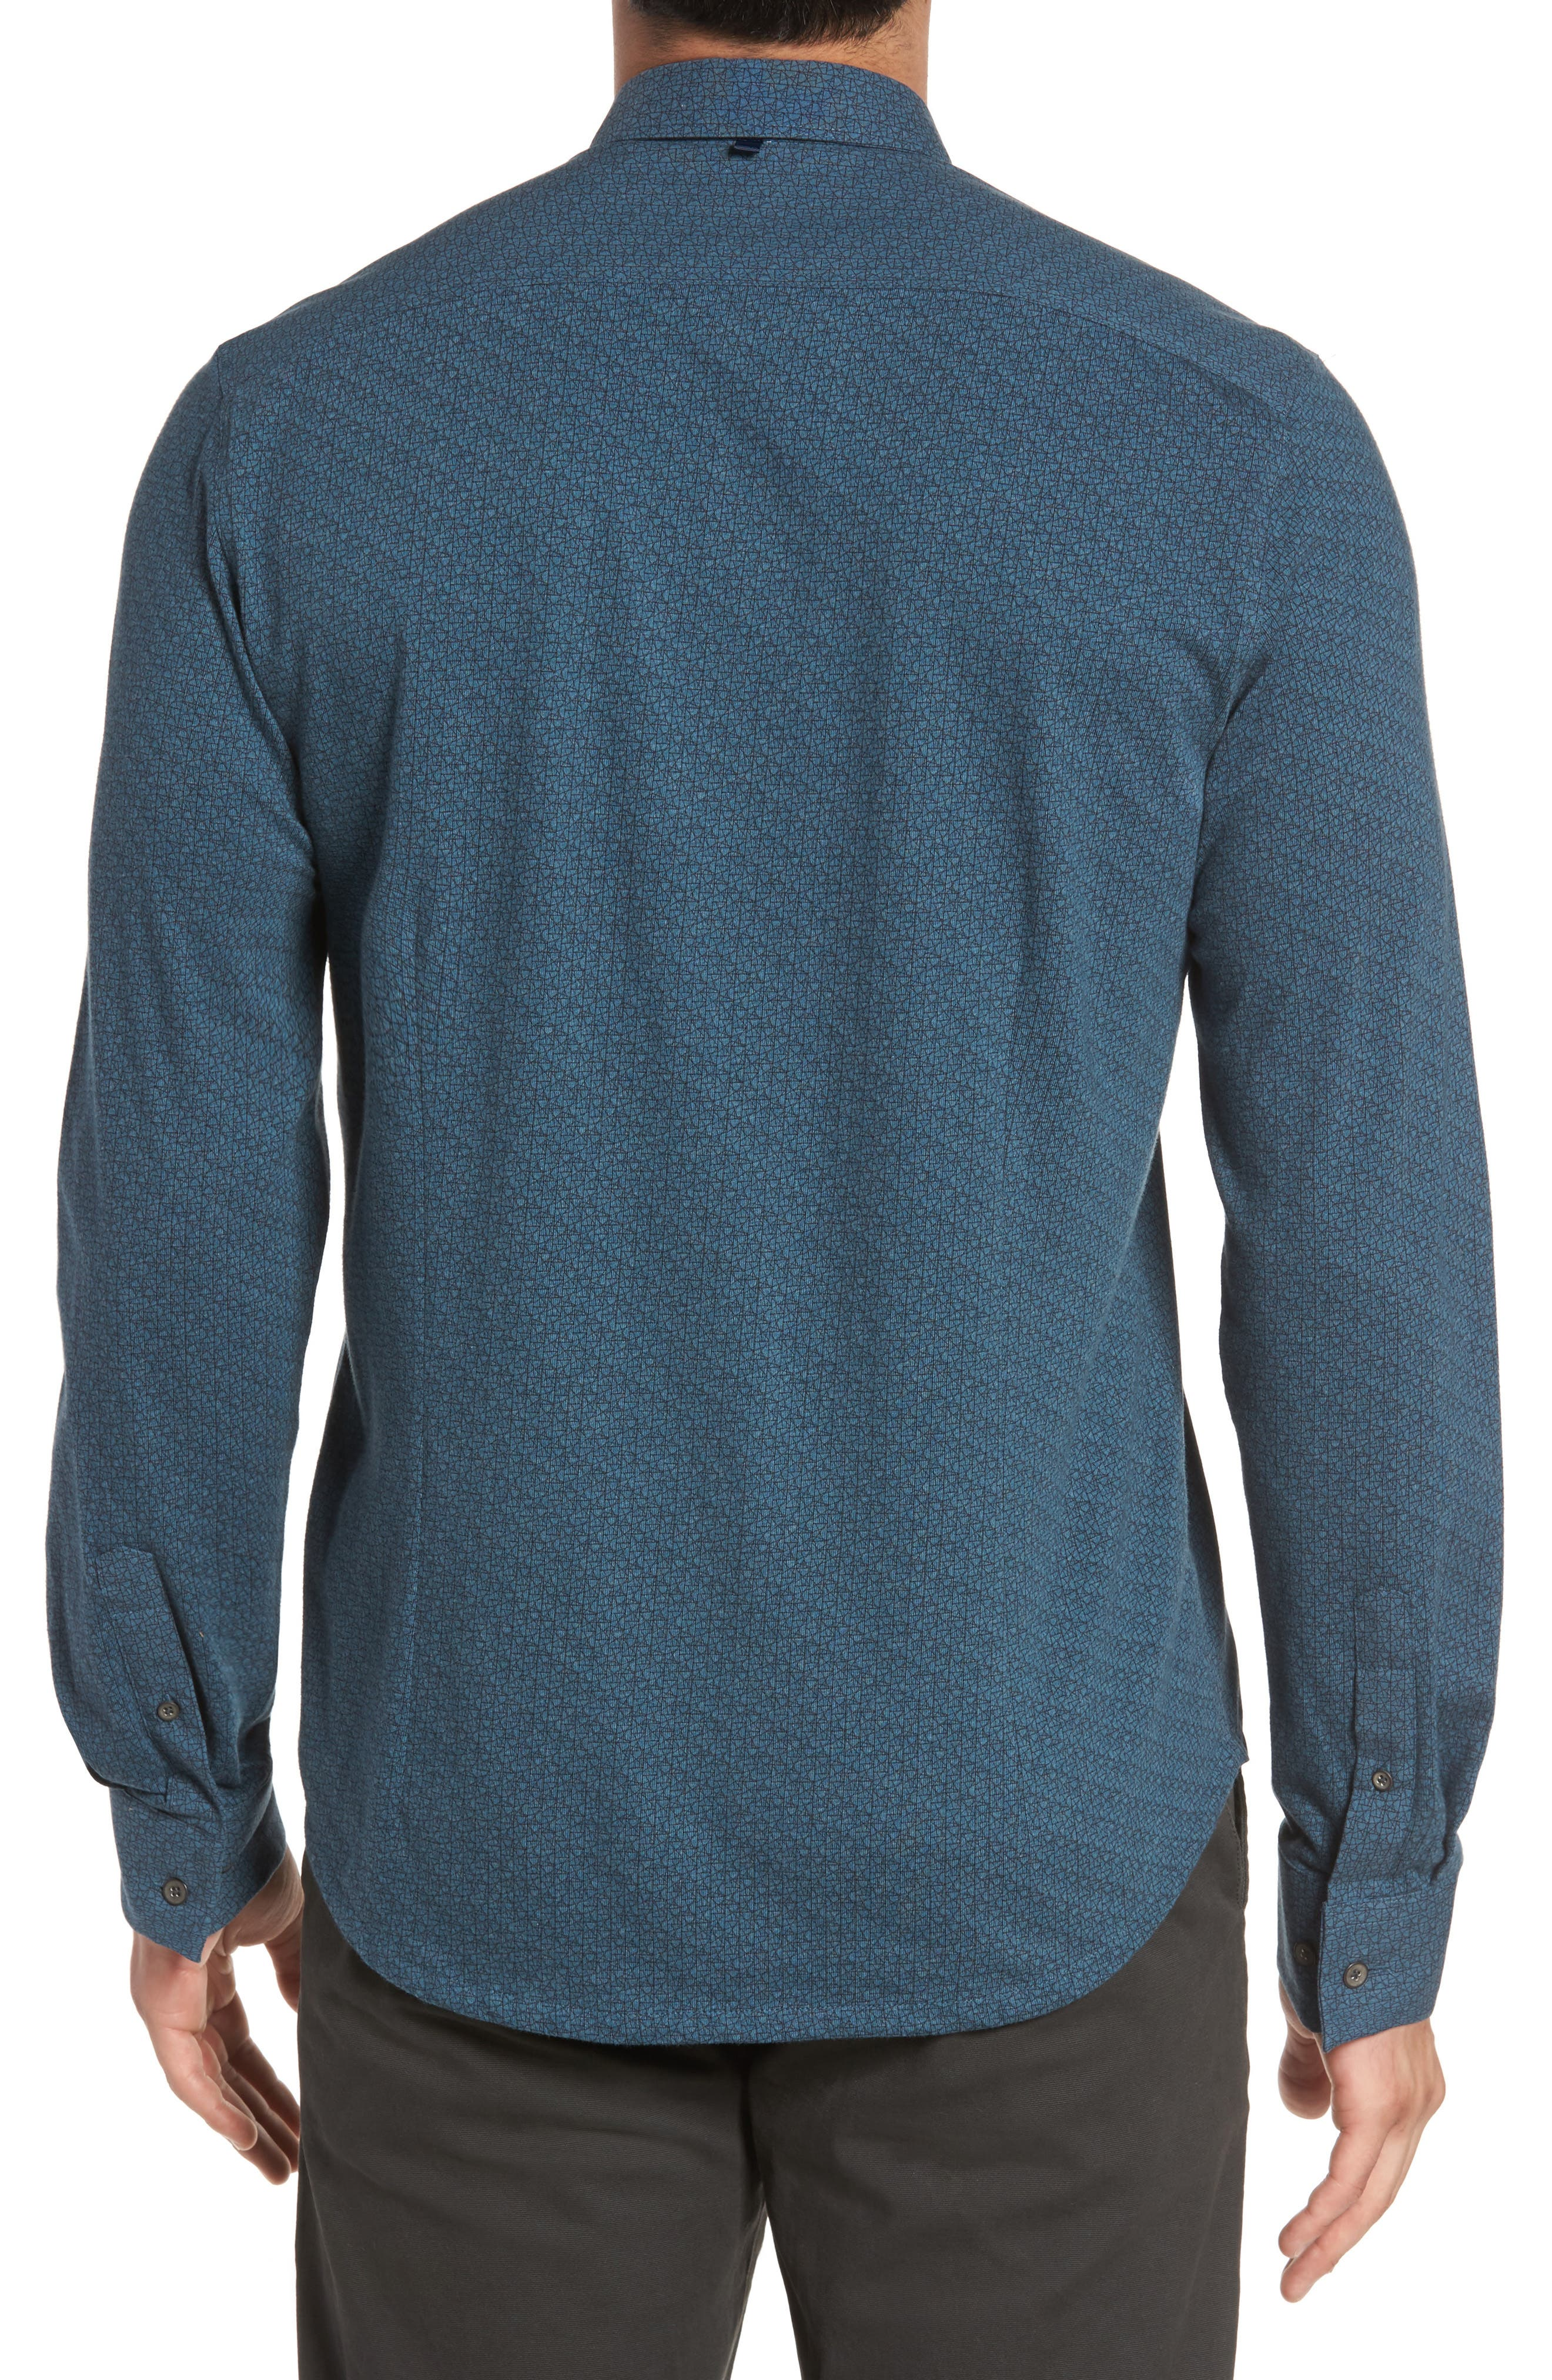 Reworked Cracked Ice Sport Shirt,                             Alternate thumbnail 2, color,                             Teal